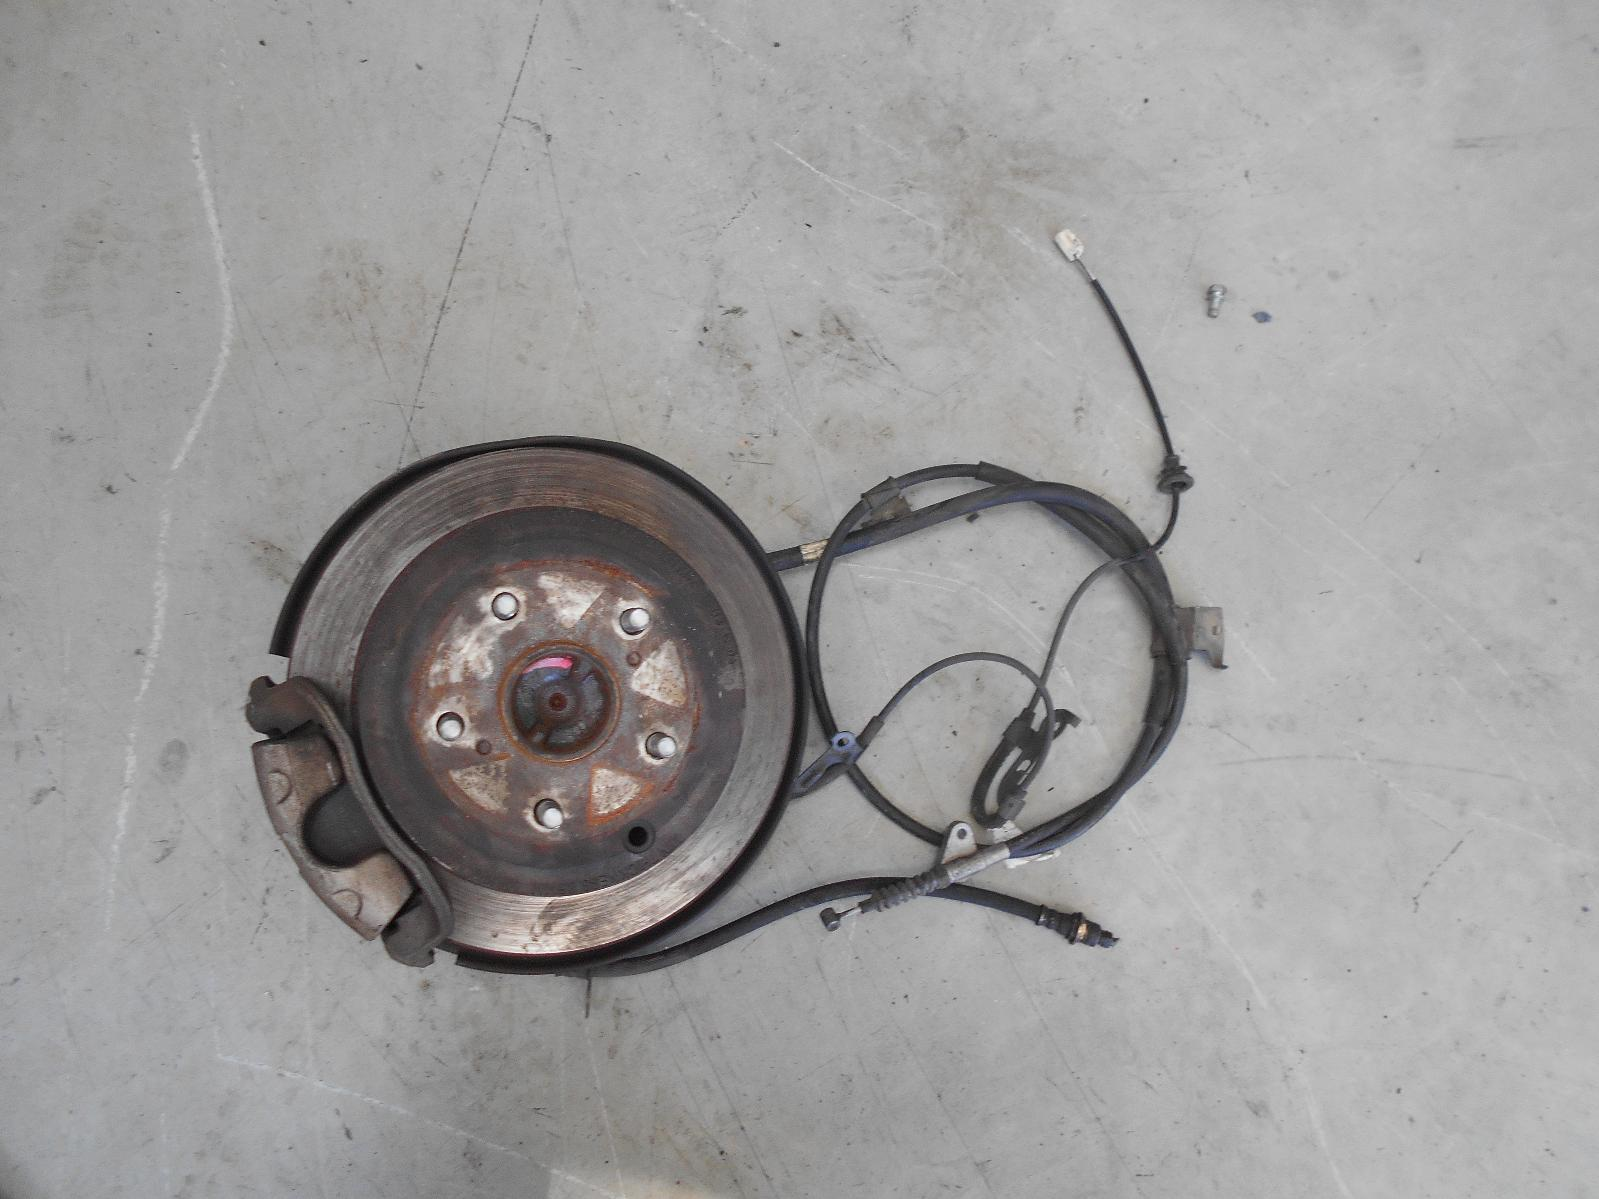 TOYOTA CAMRY, Left Rear Hub Assembly, SK36, ABS TYPE, 08/02-05/06